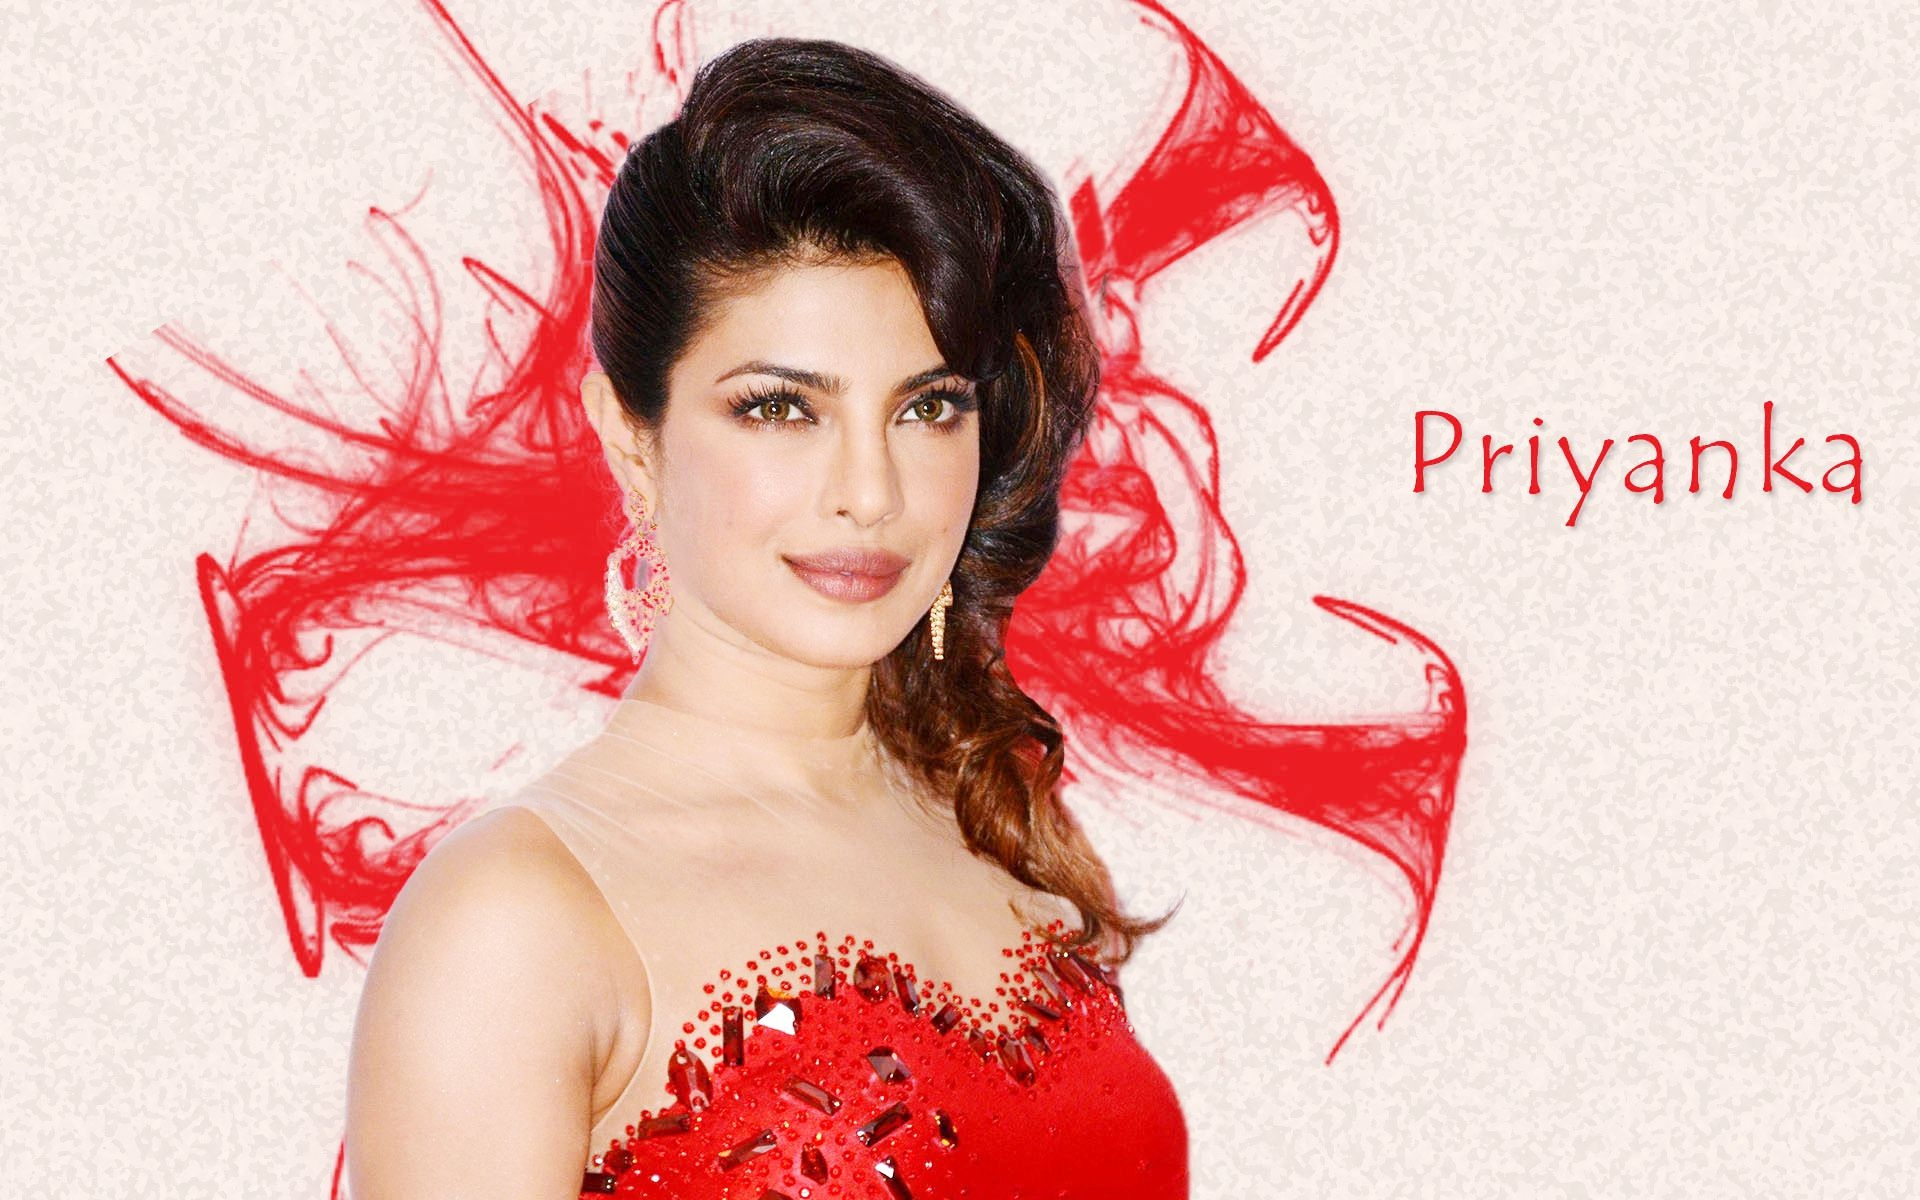 Priyanka chopra red dress wallpaper